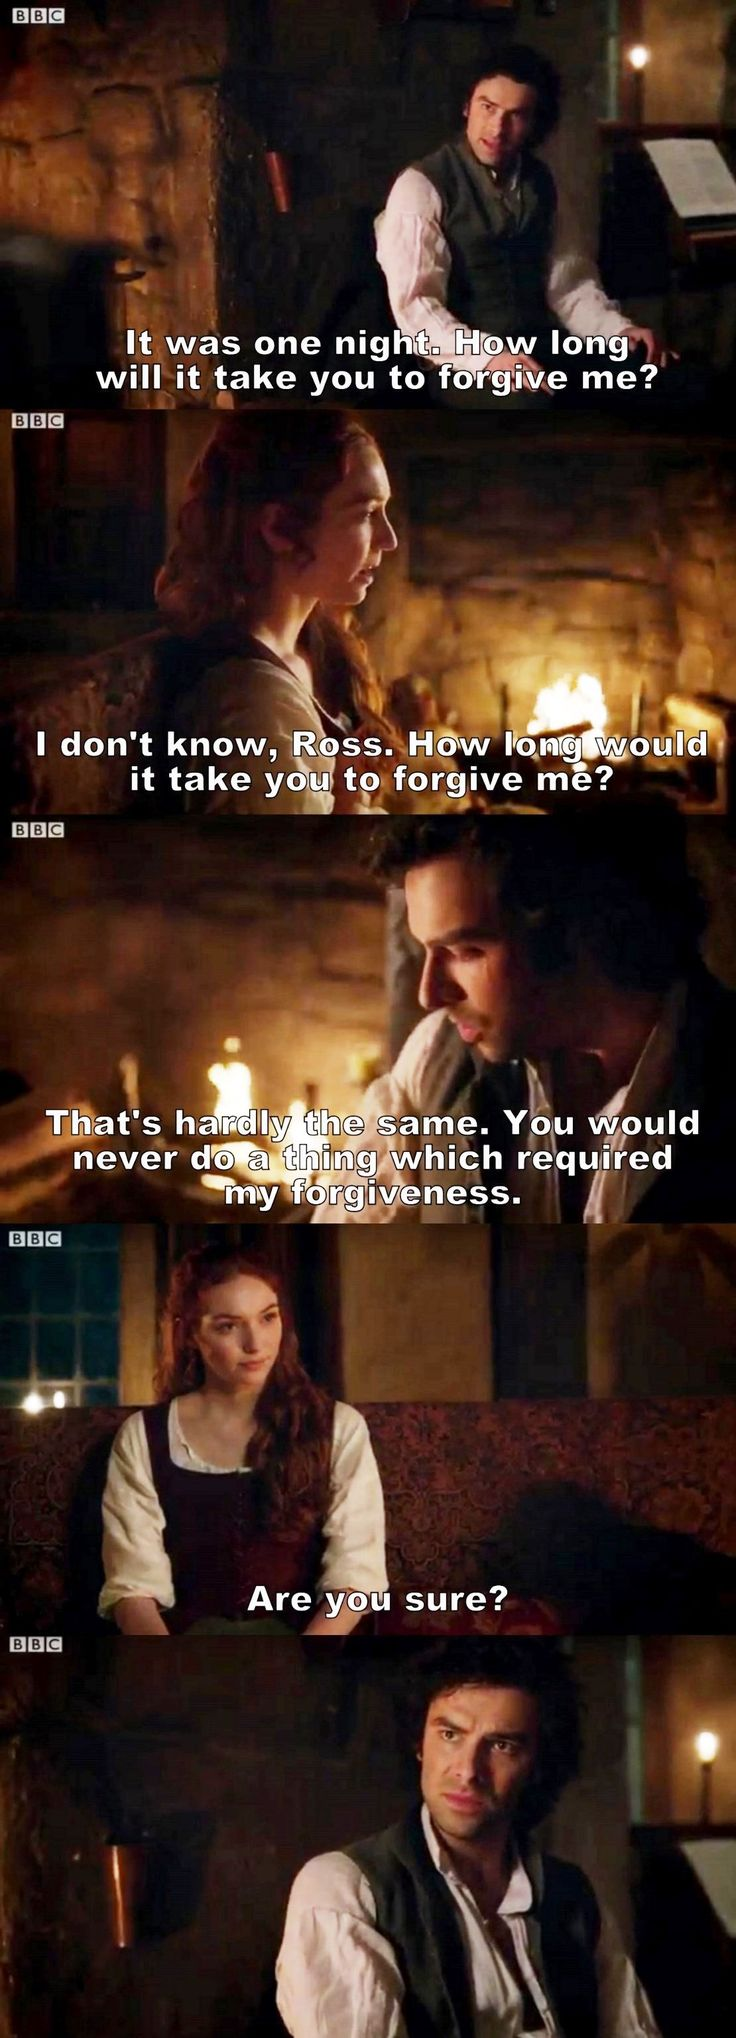 """I don't know, Ross. How long would it take you to forgive me?"" - Demelza and Ross #Poldark"